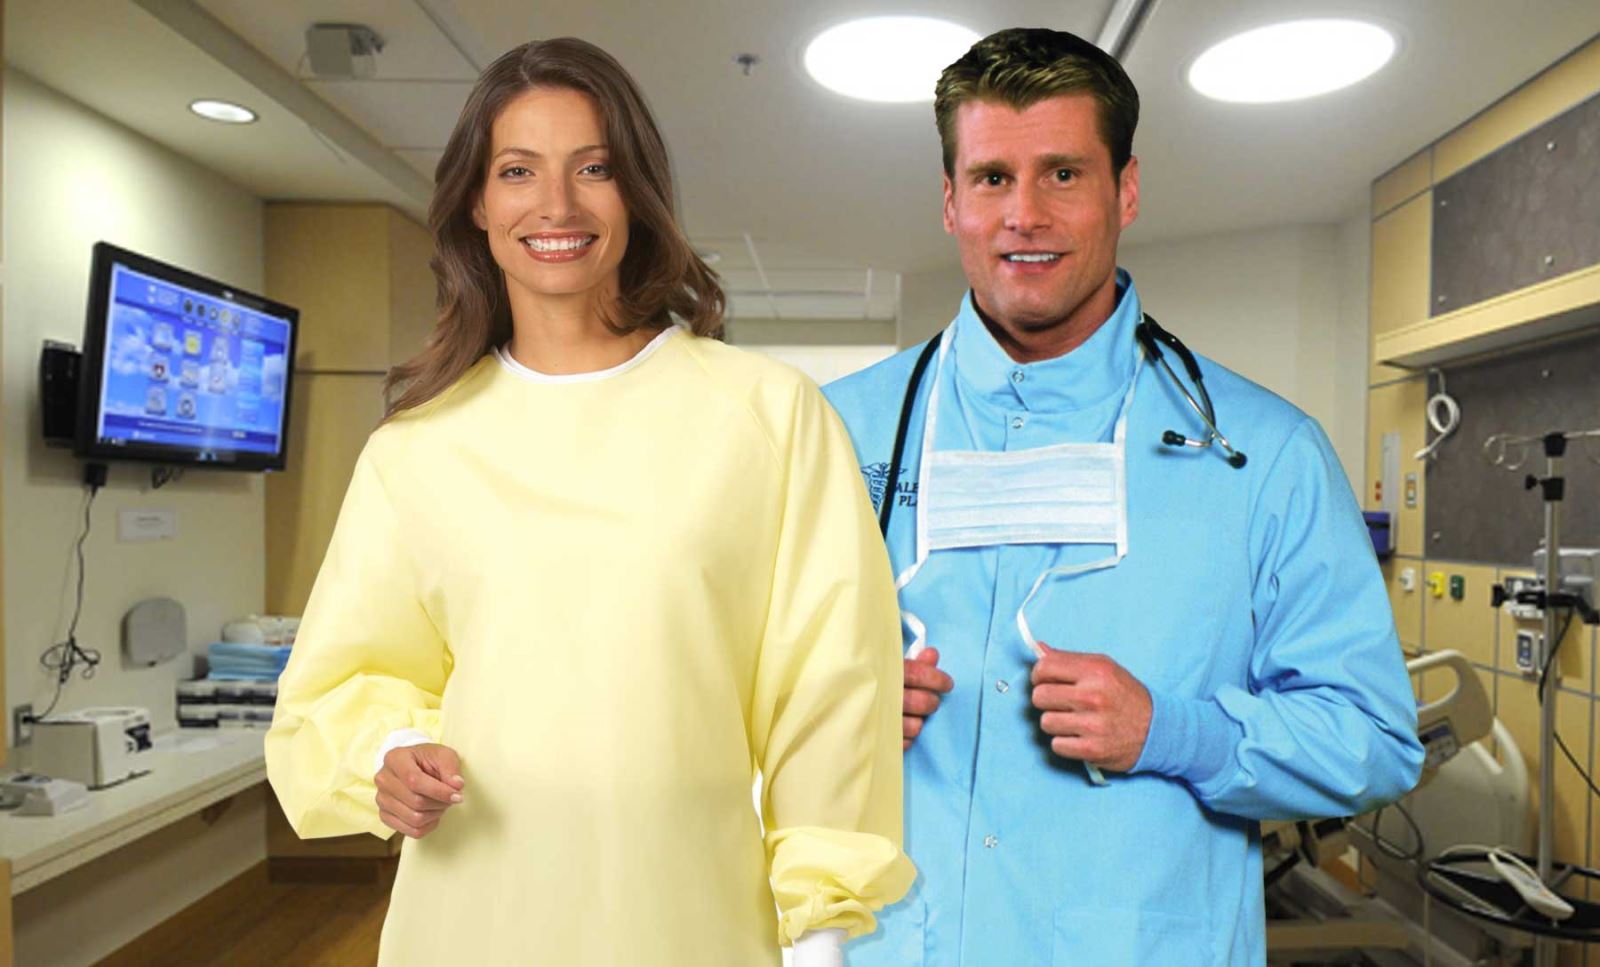 Precautionary Lab Coat Image